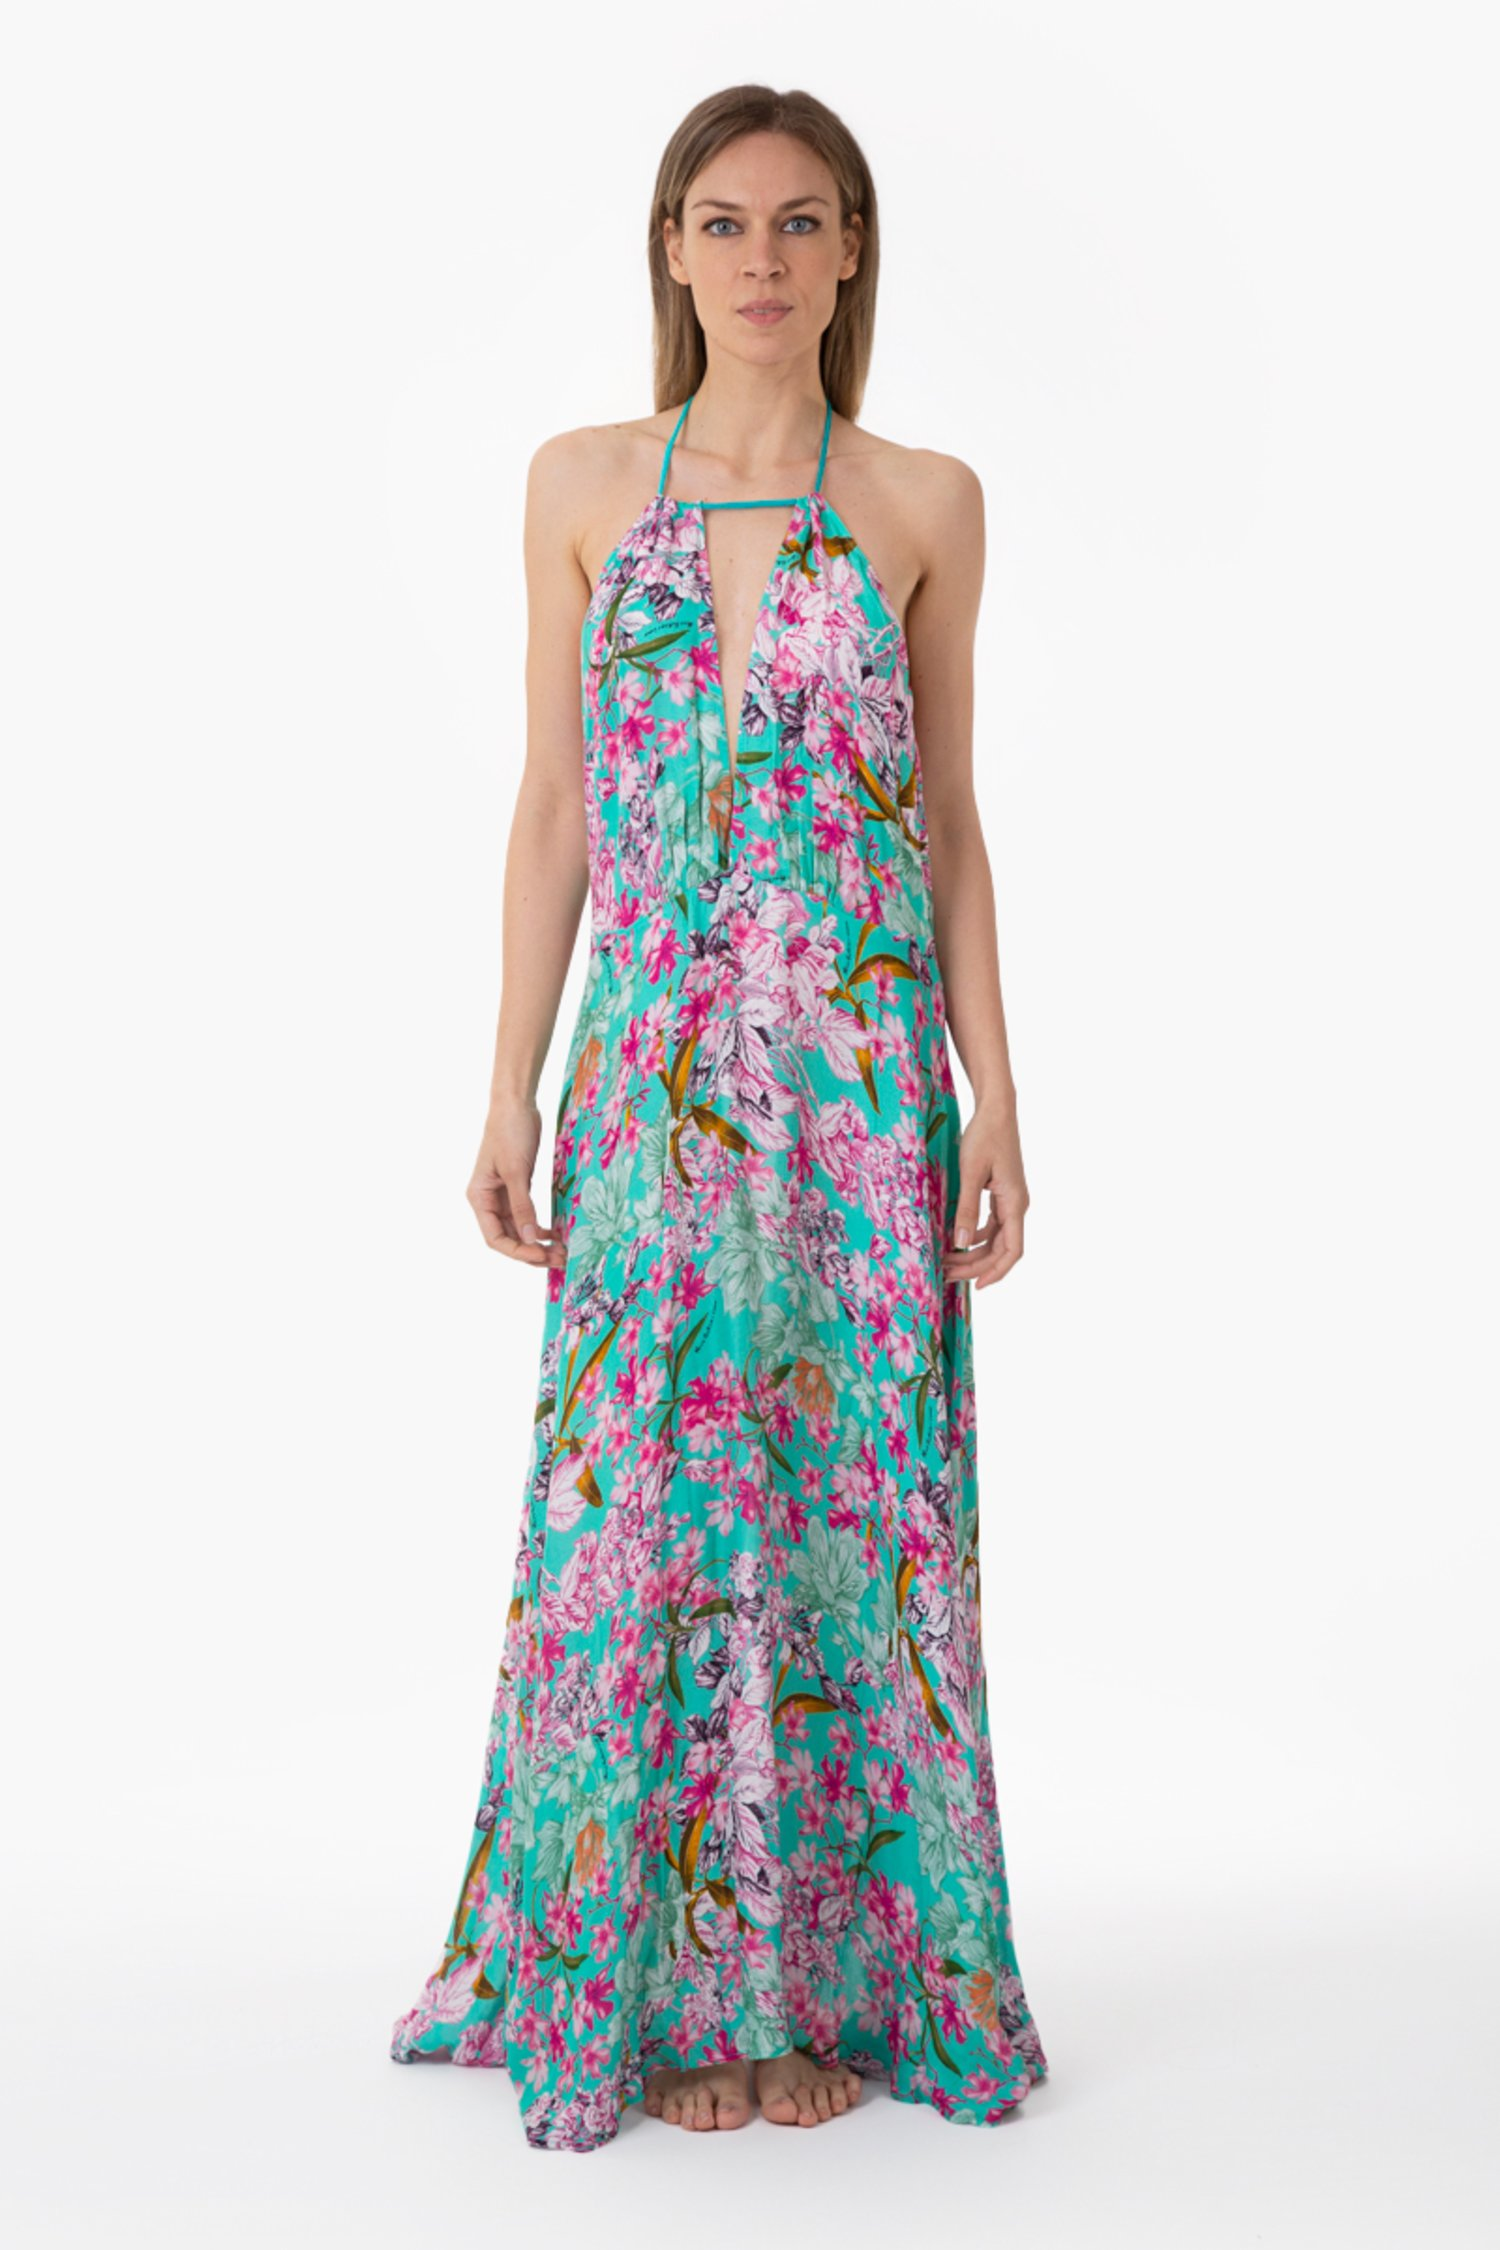 LUXE PRINTED LONG DRESS - Fiori Azzurro